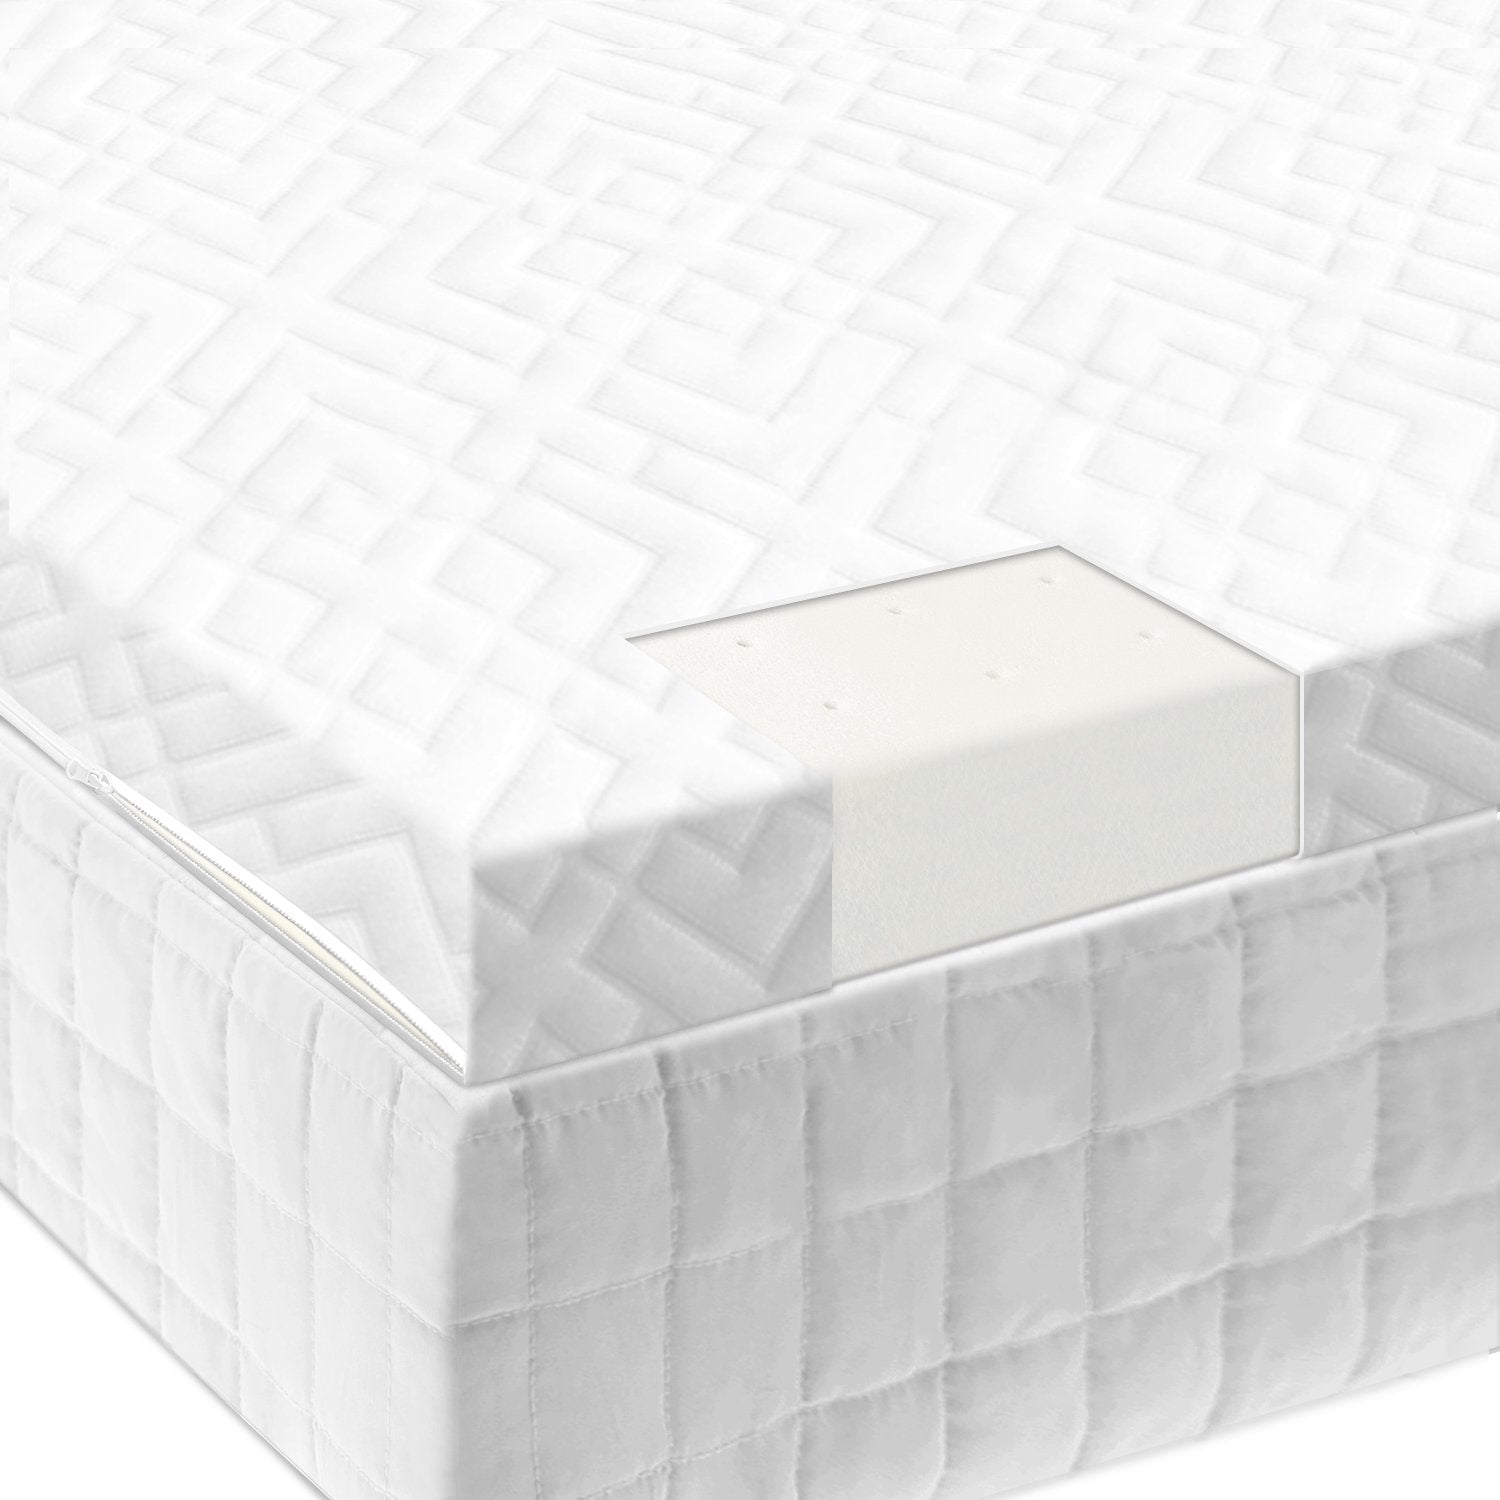 foldable x exceptional medium and photo att bed natural futon folding shikibuton inch mattress wool firm all of latex